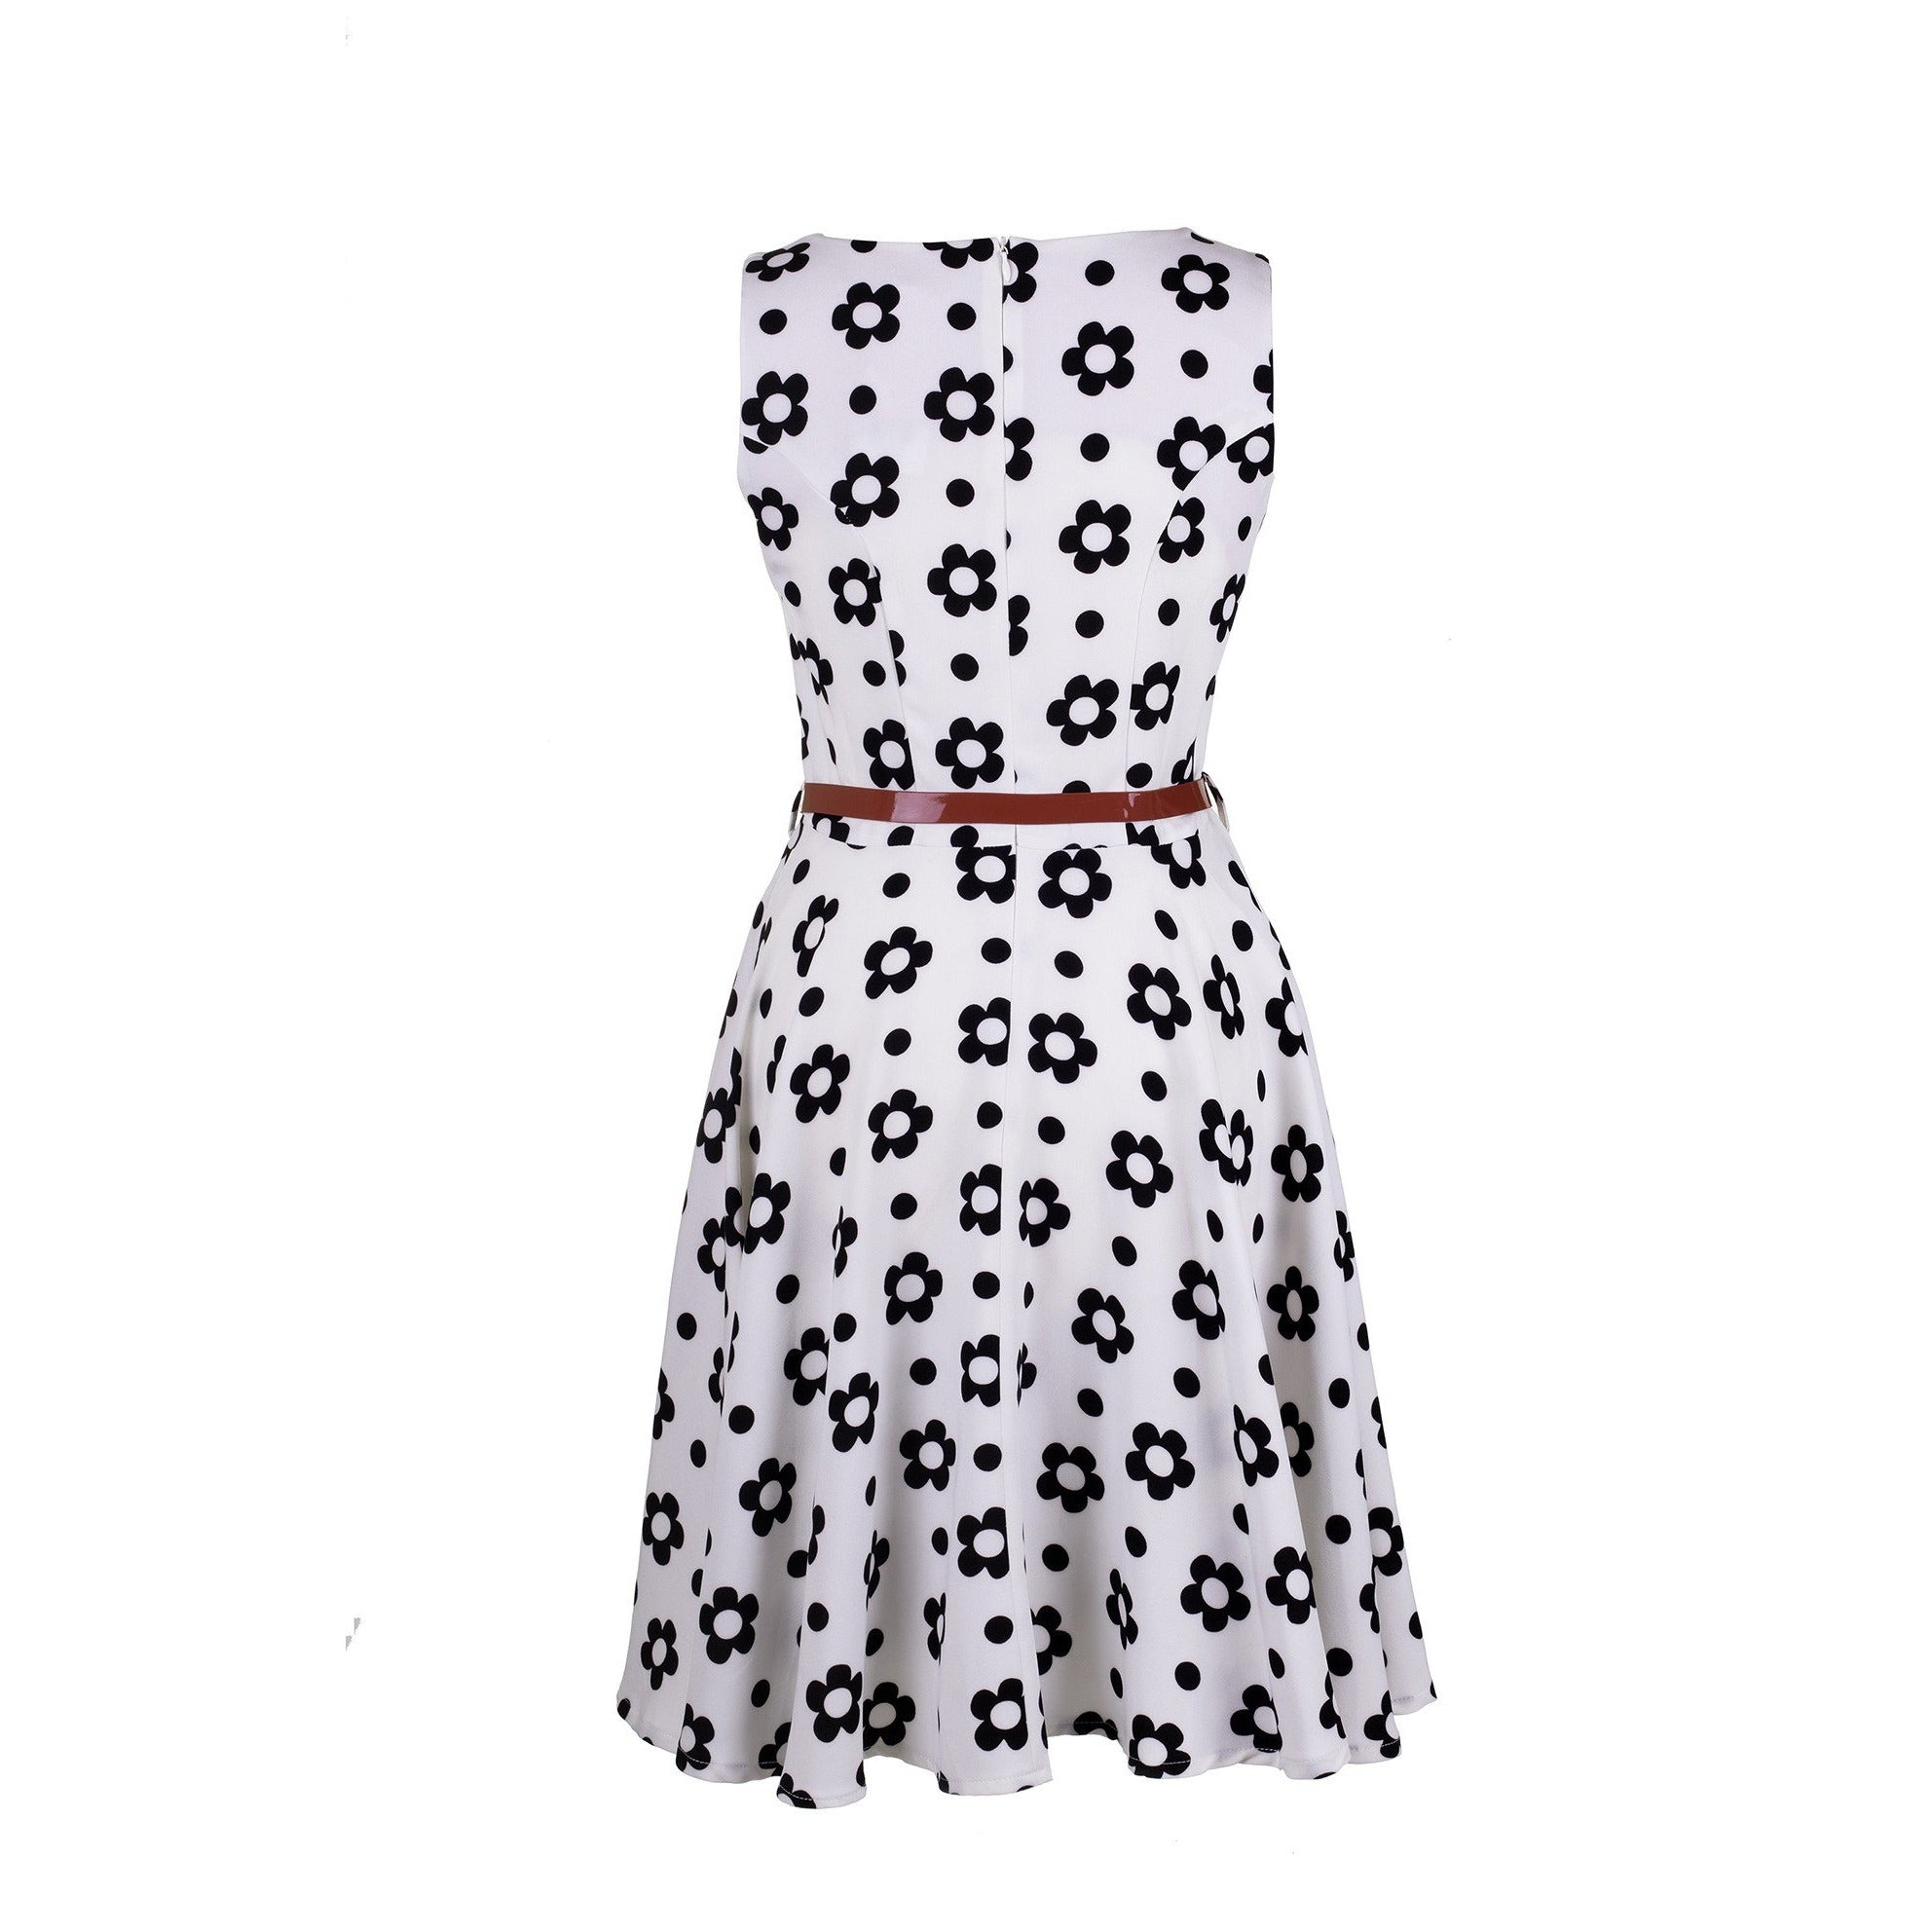 Flower Print Skater Dress With Pockets White And Black And Black